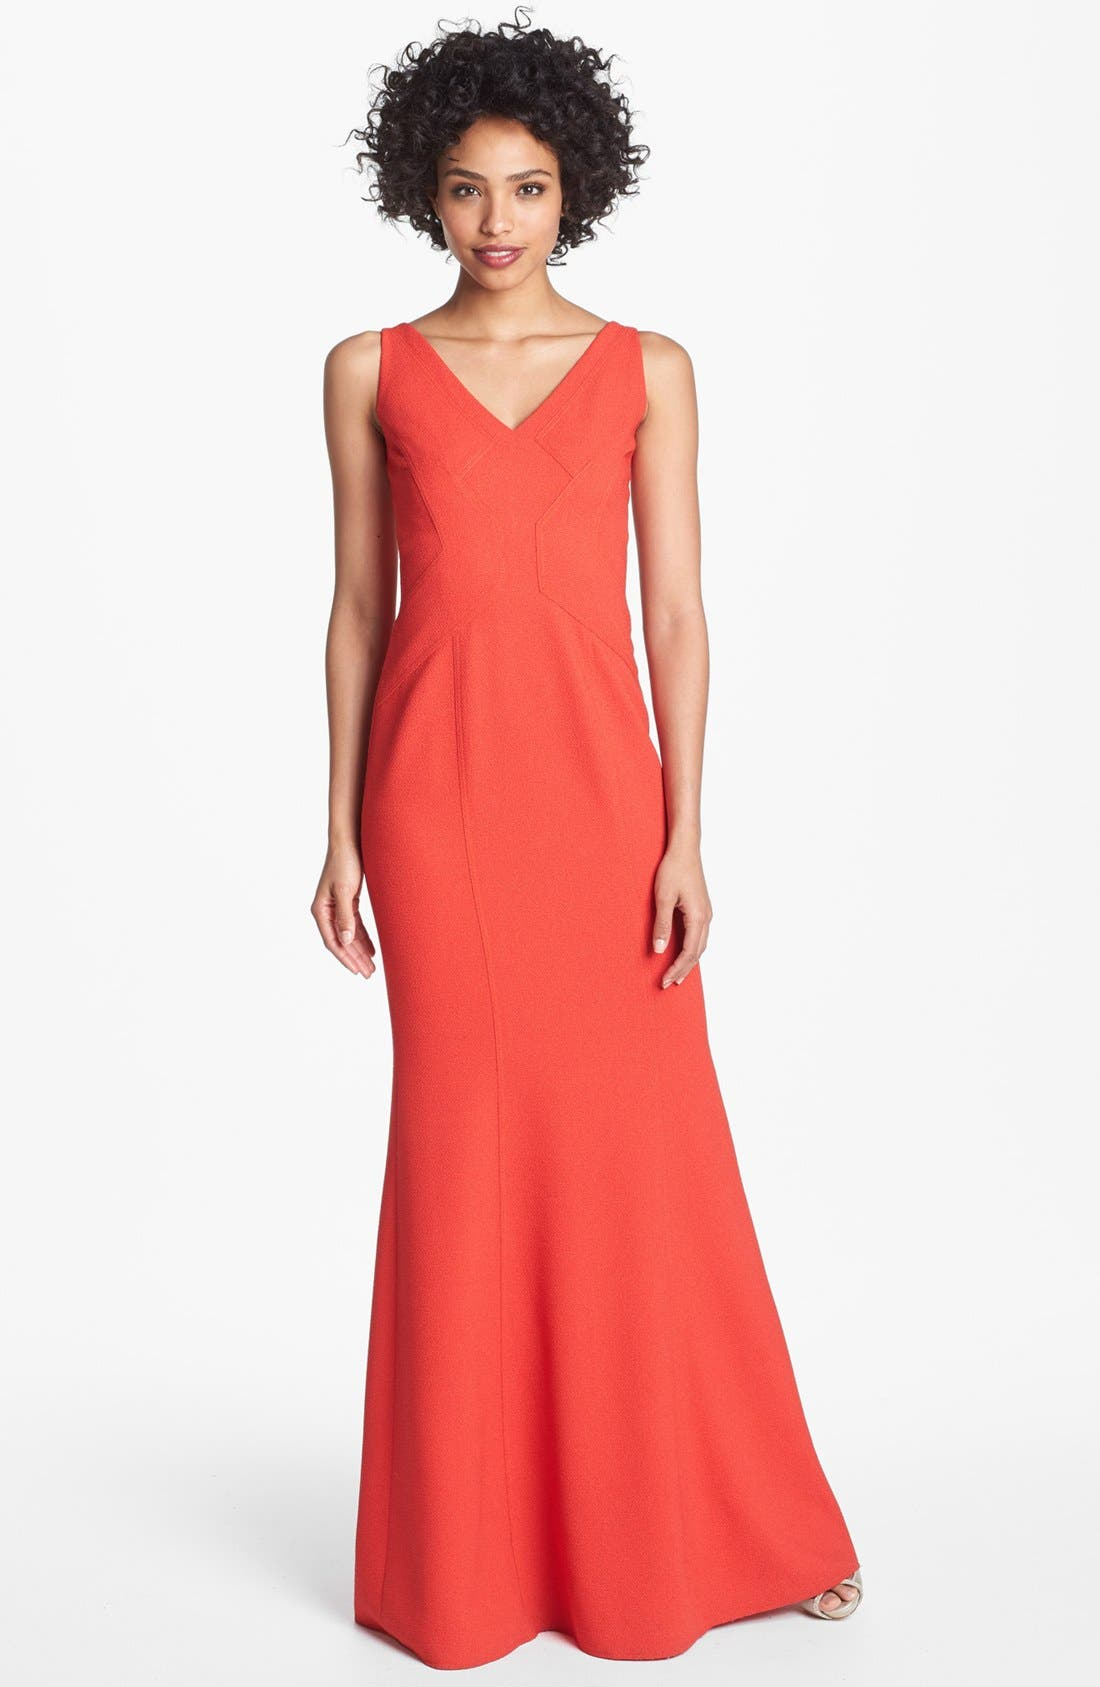 Main Image - David Meister Seamed Crepe Trumpet Dress